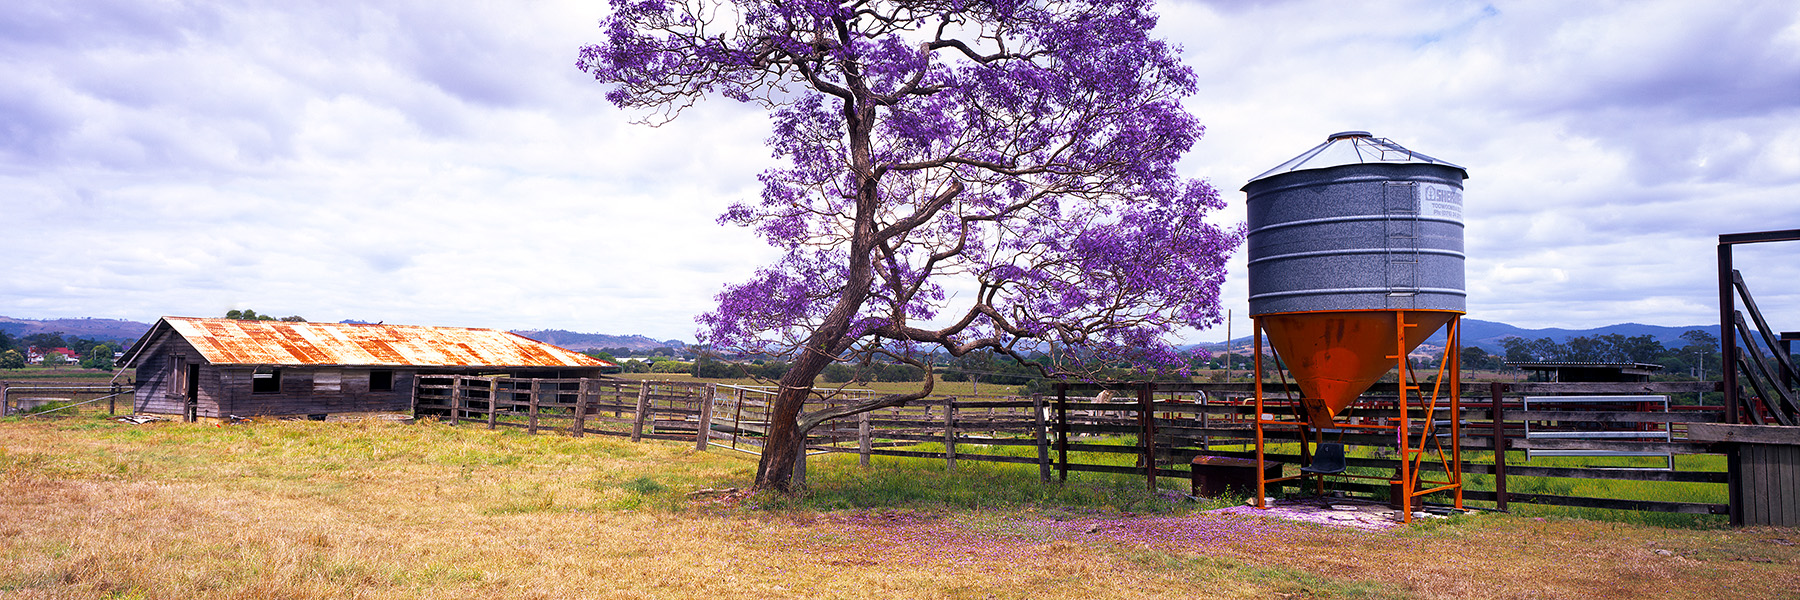 Country Jacaranda Tree